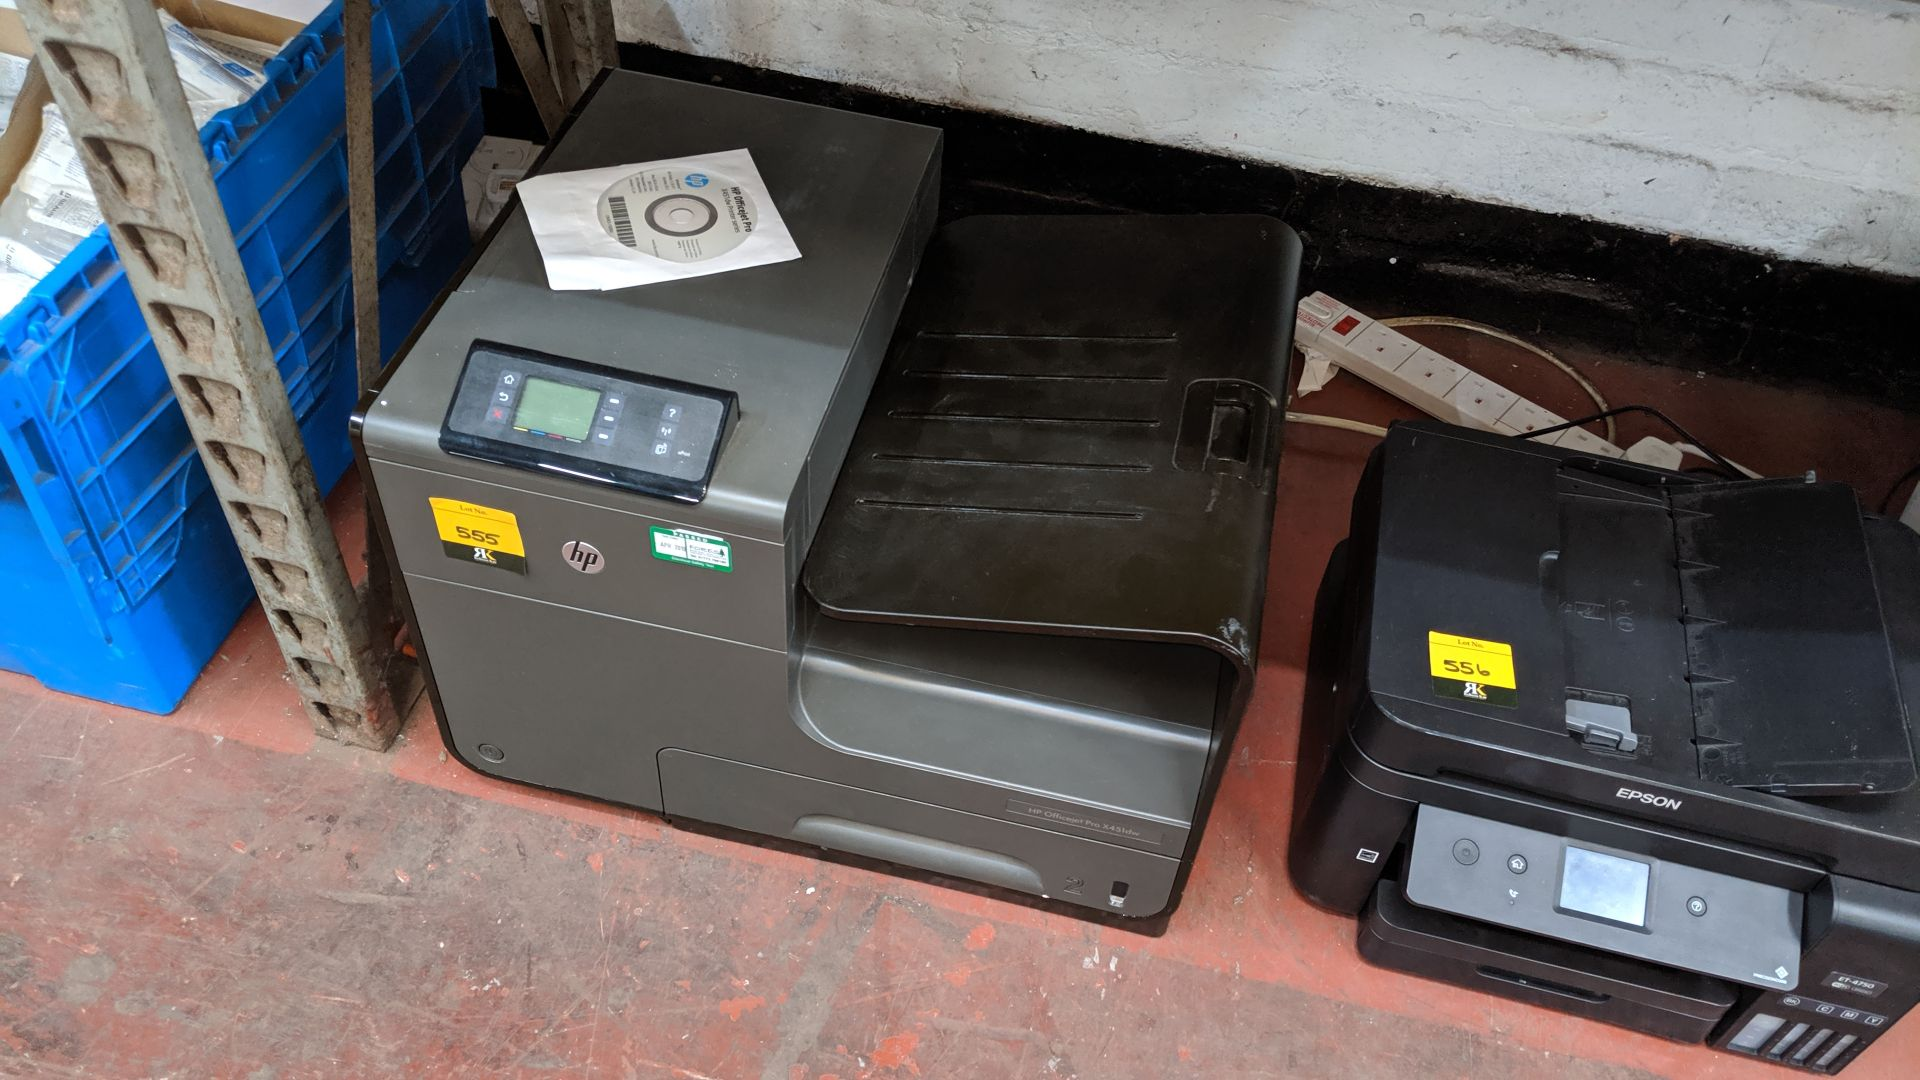 Lot 555 - HP OfficeJet Pro X451DW multifunction printer. This is one of a large number of lots used/owned by